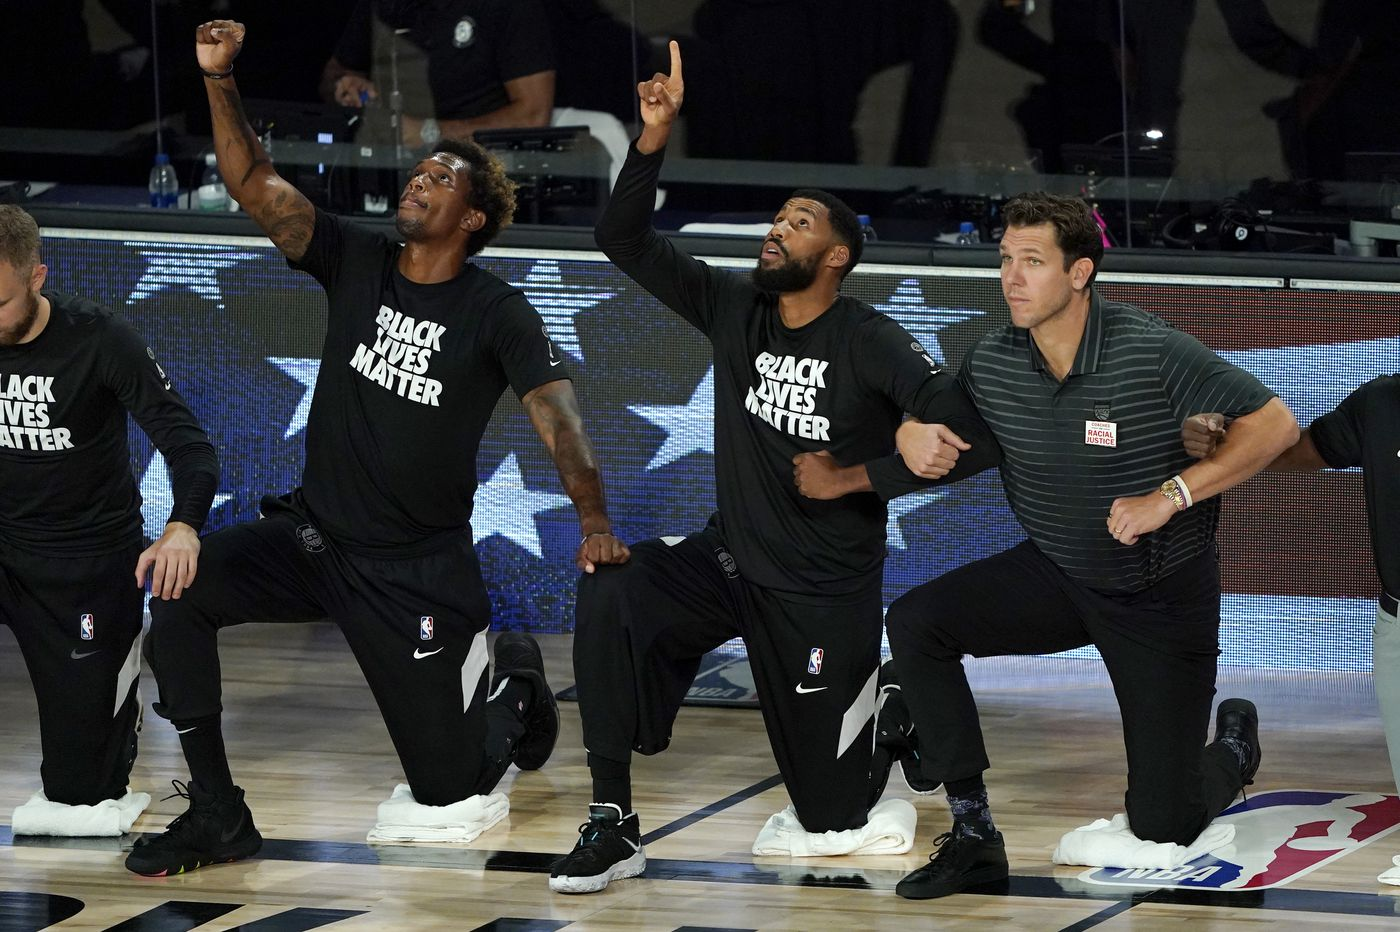 LeBron James, Colin Kaepernick, other athletes react to Breonna Taylor decision, and more sports news